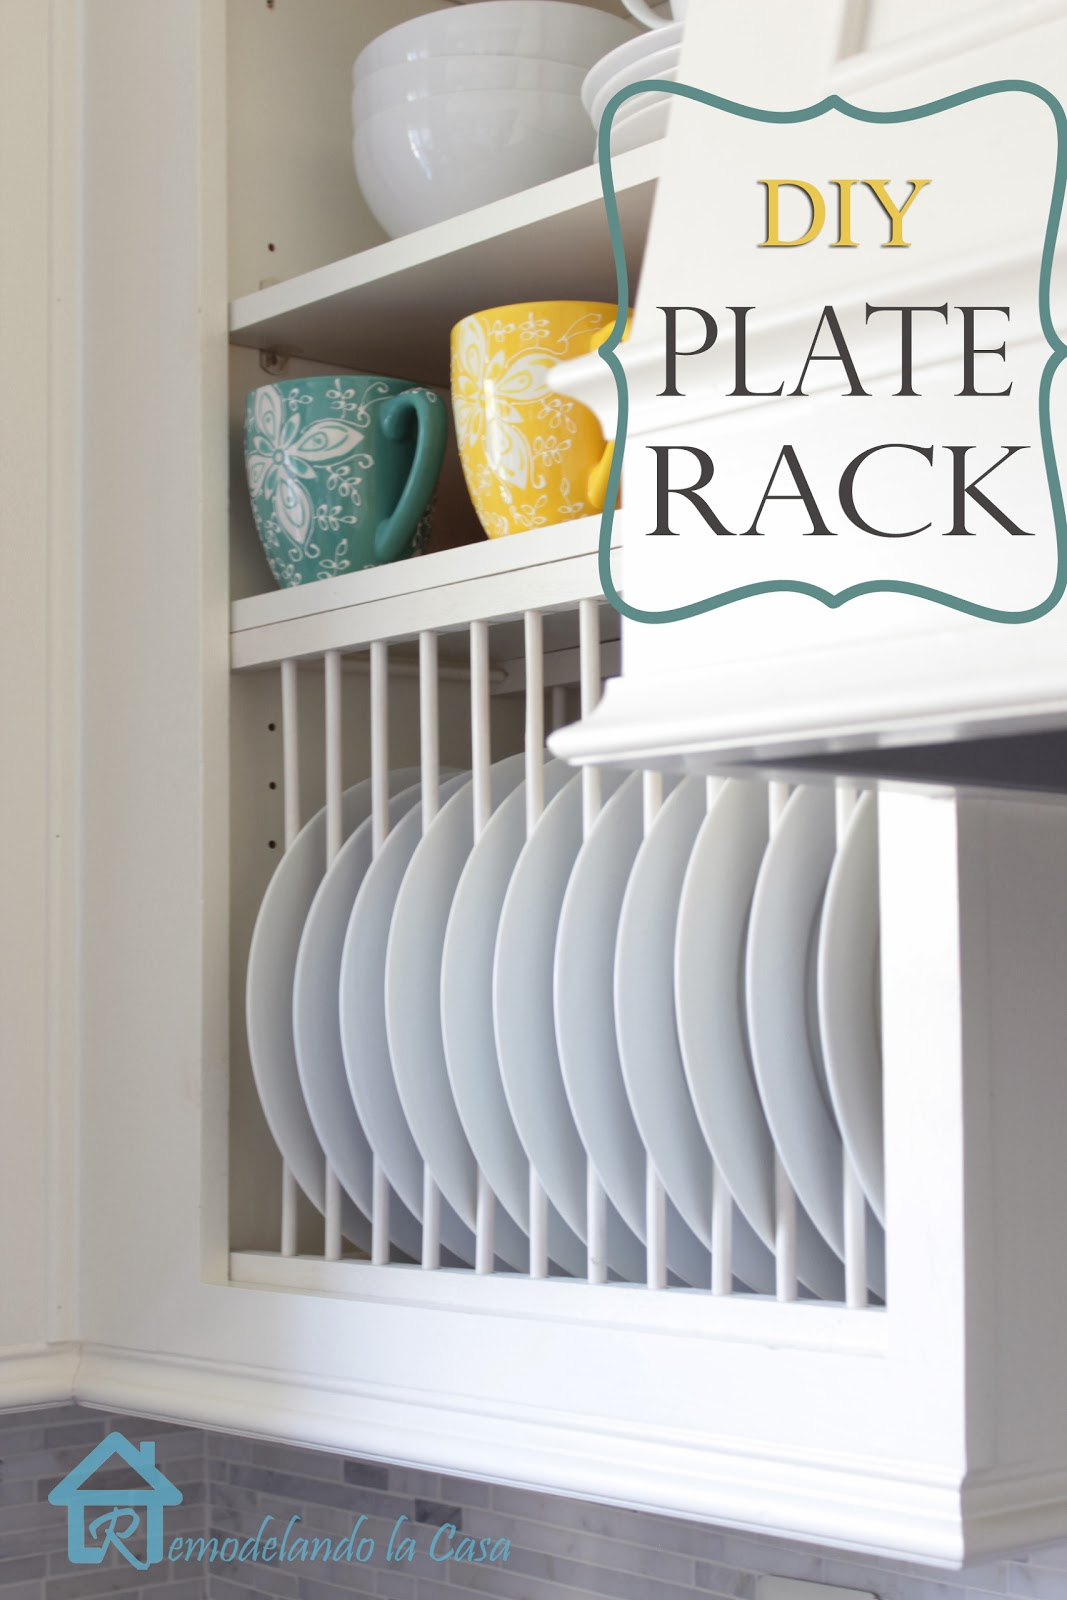 Gentil A Regular Cabinet Is Giving A Plate Rack With Round And Square Dowels